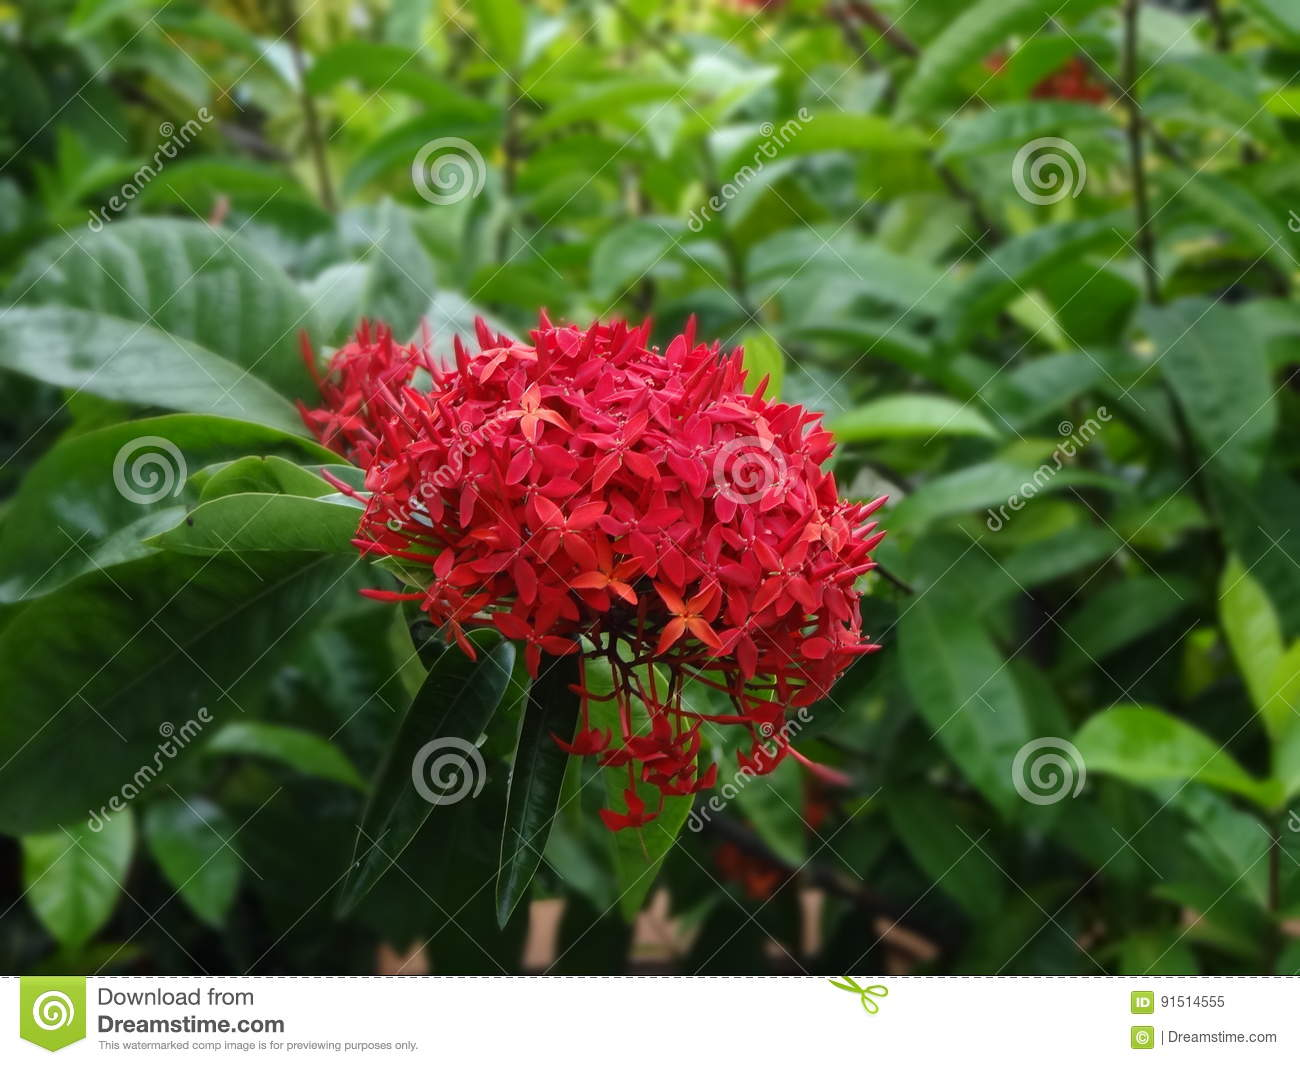 ISORA FLOWER stock image. Image of colored, foliage, isora - 91514555